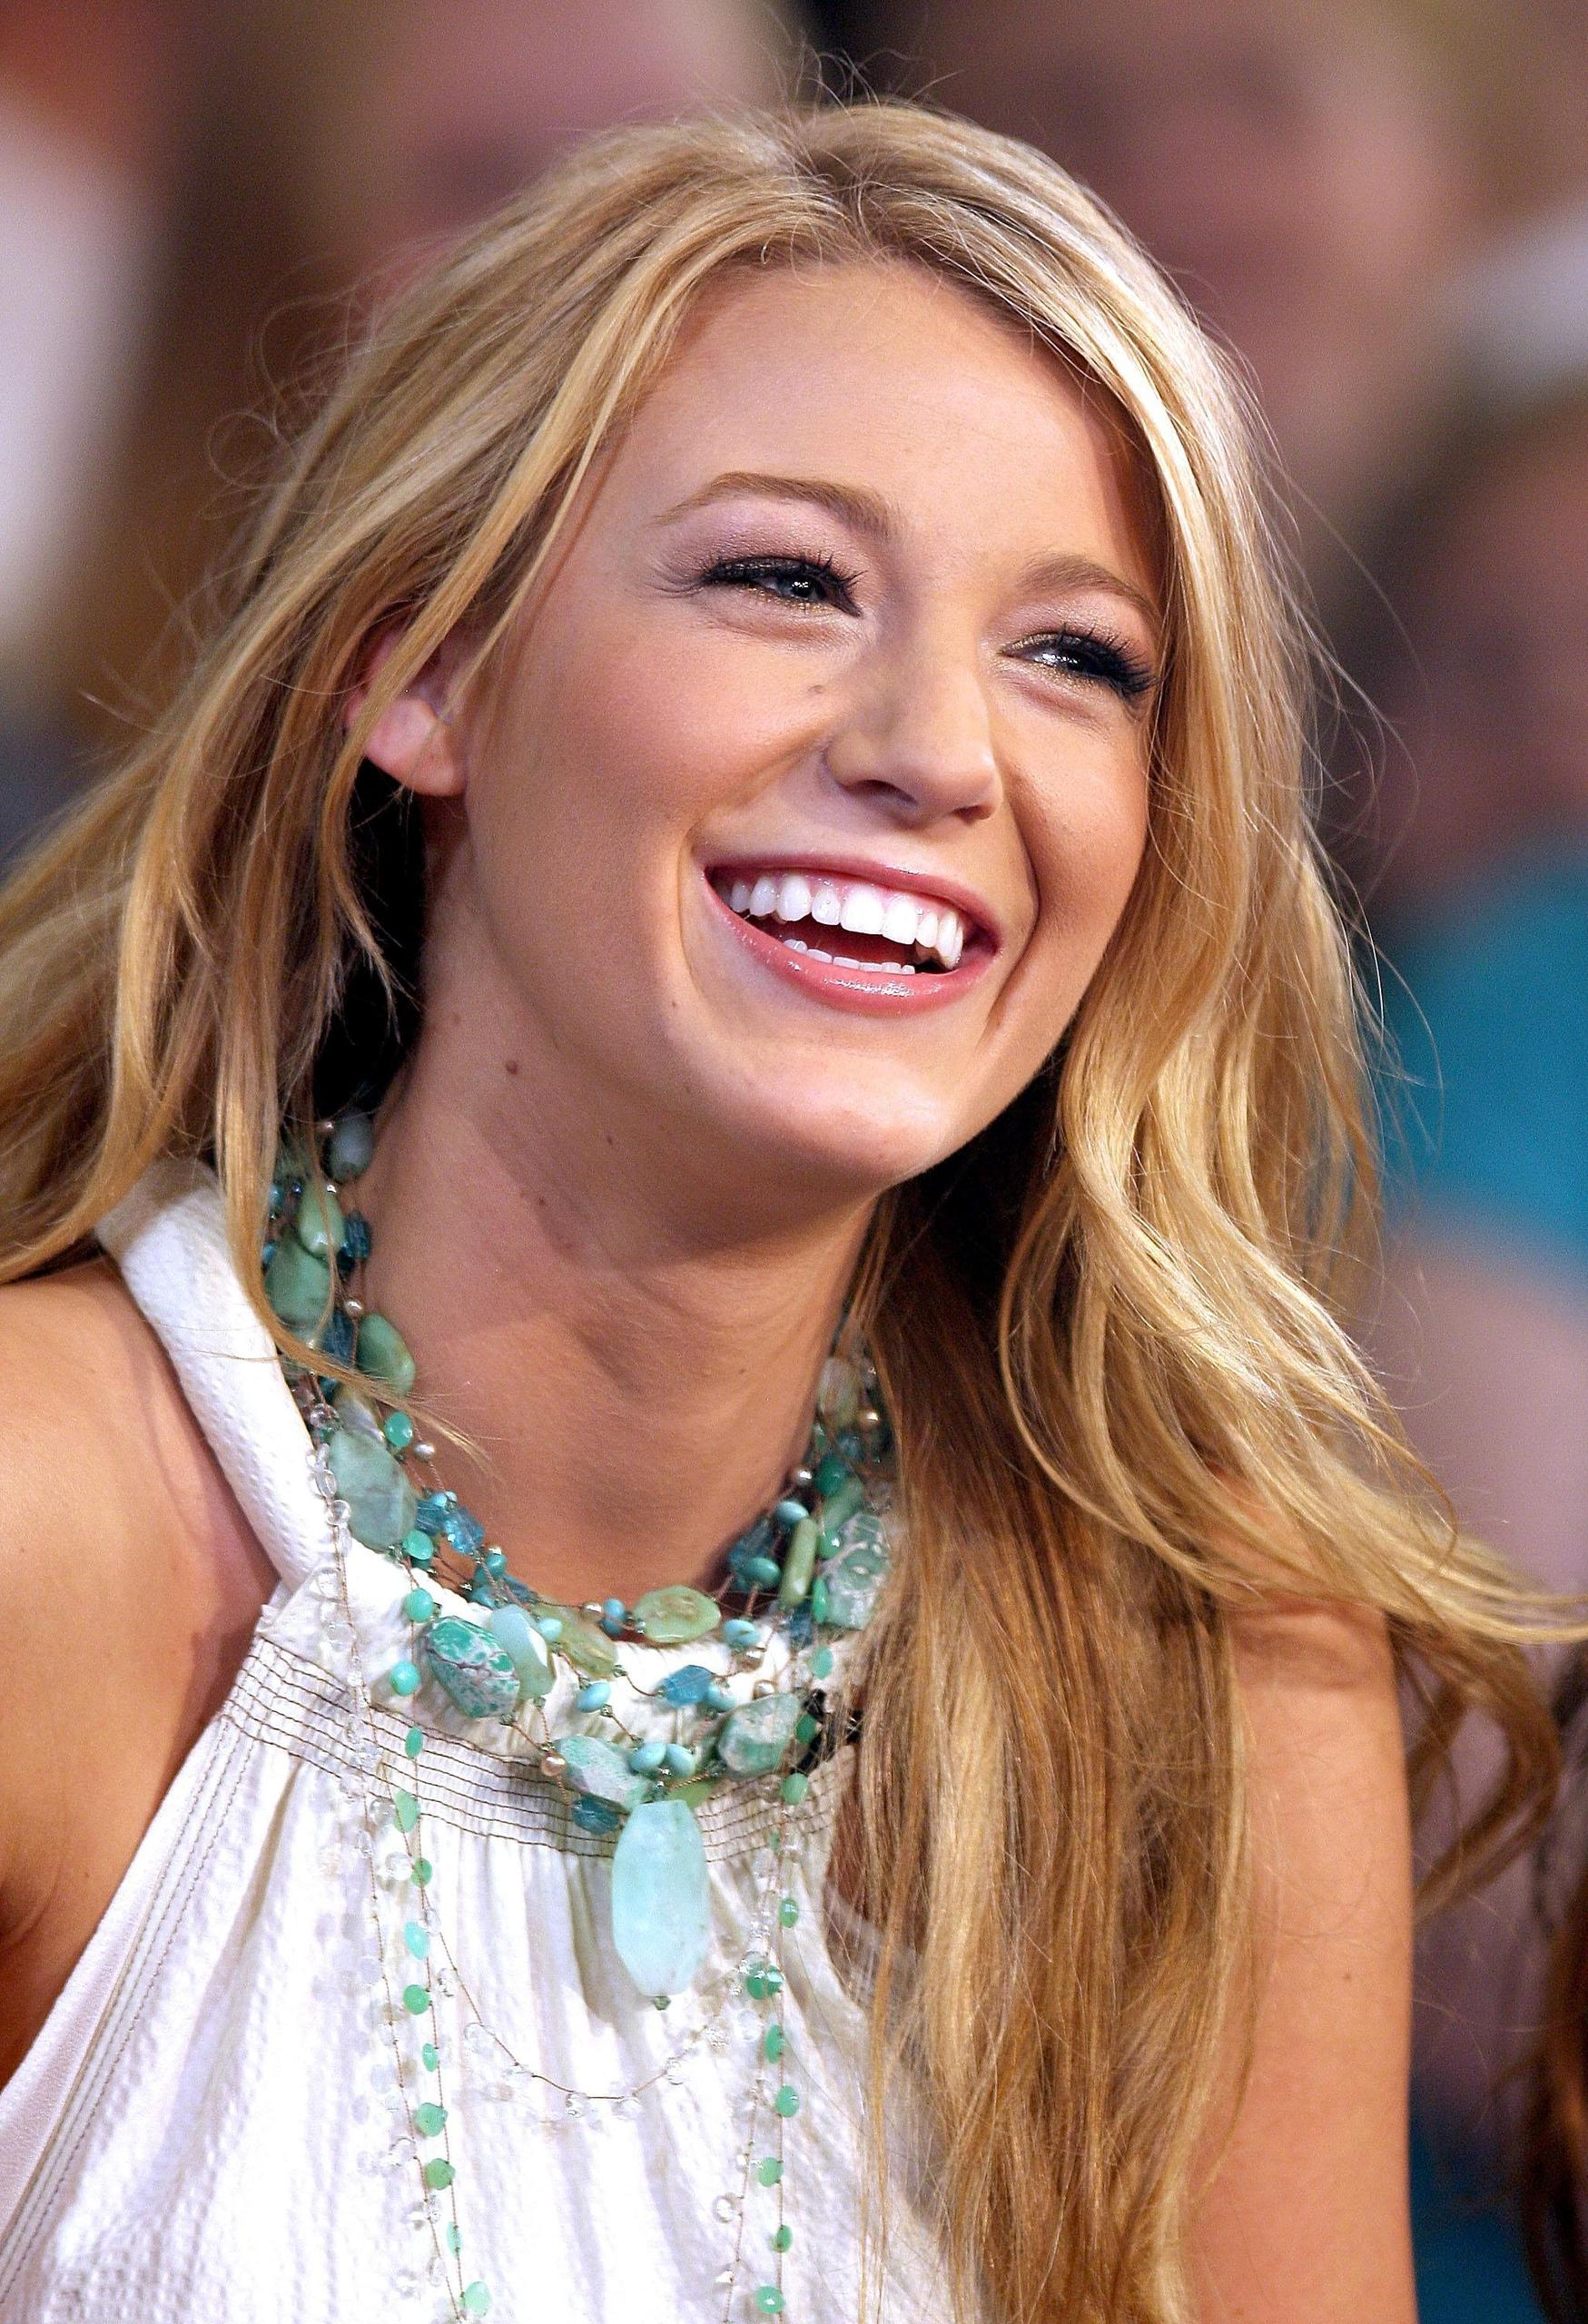 Blake Lively images Blake HD wallpaper and background photos (1997205) Blake Lively